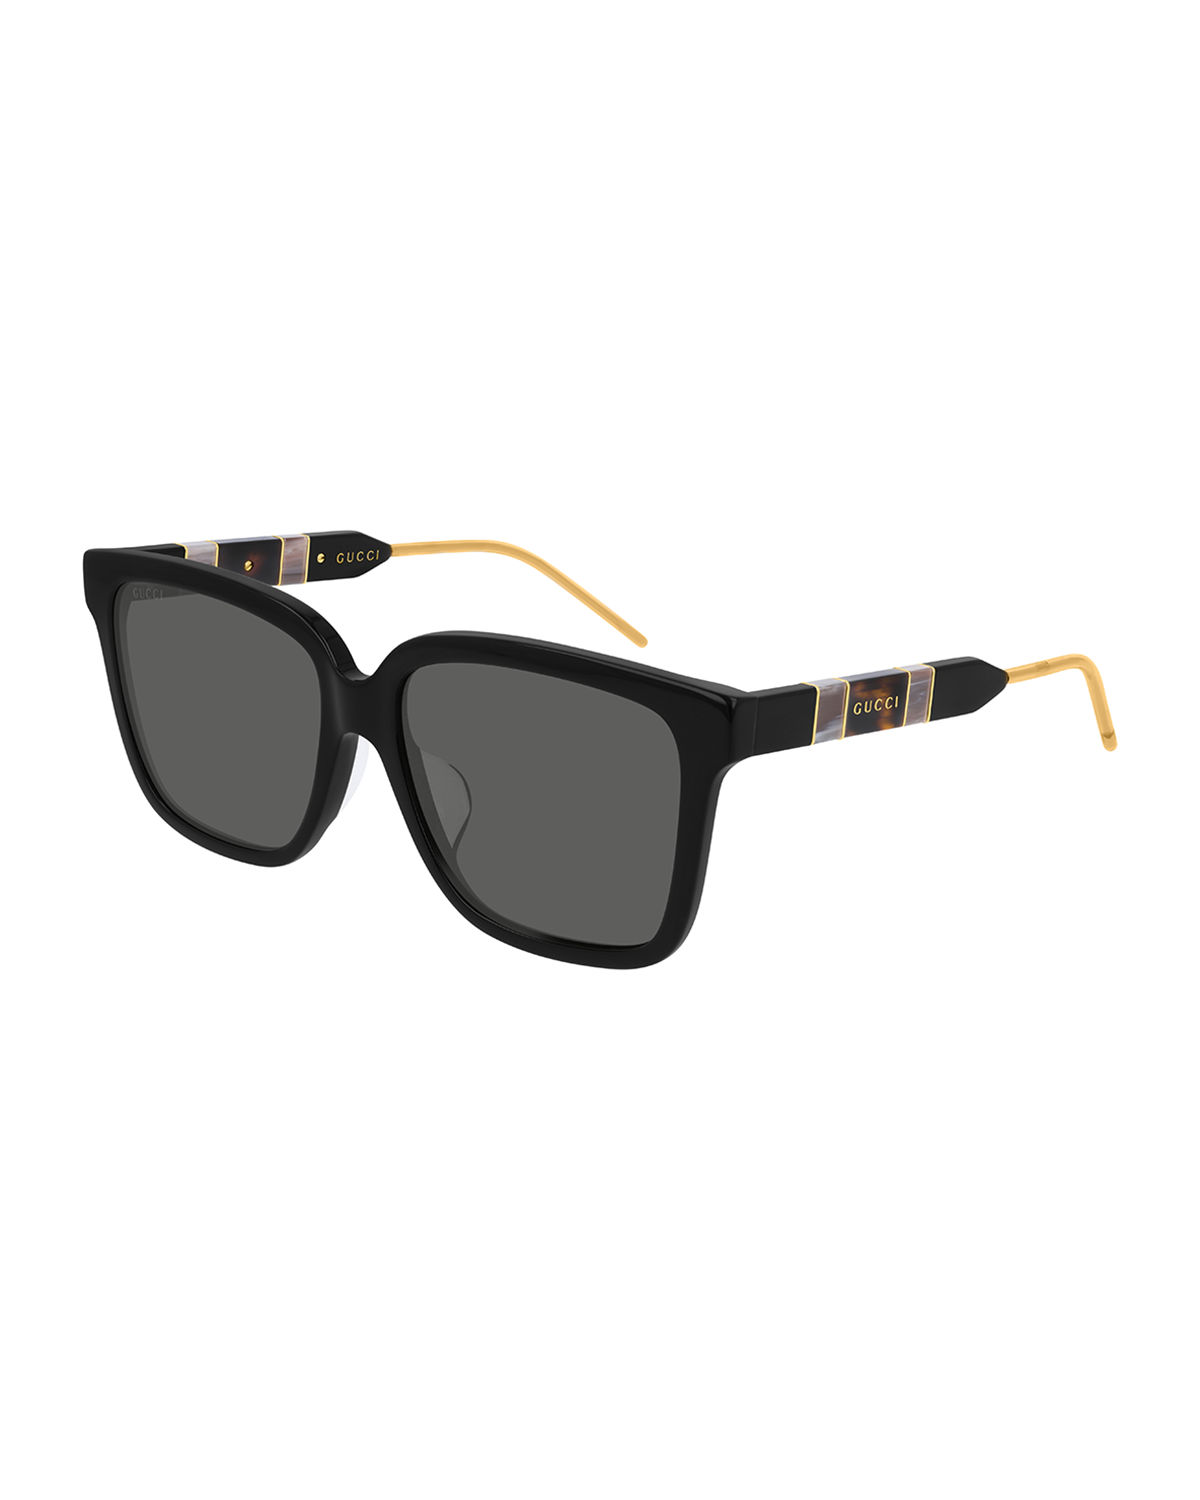 Gucci Sunglasses SQUARE WEB TEMPLES SUNGLASSES